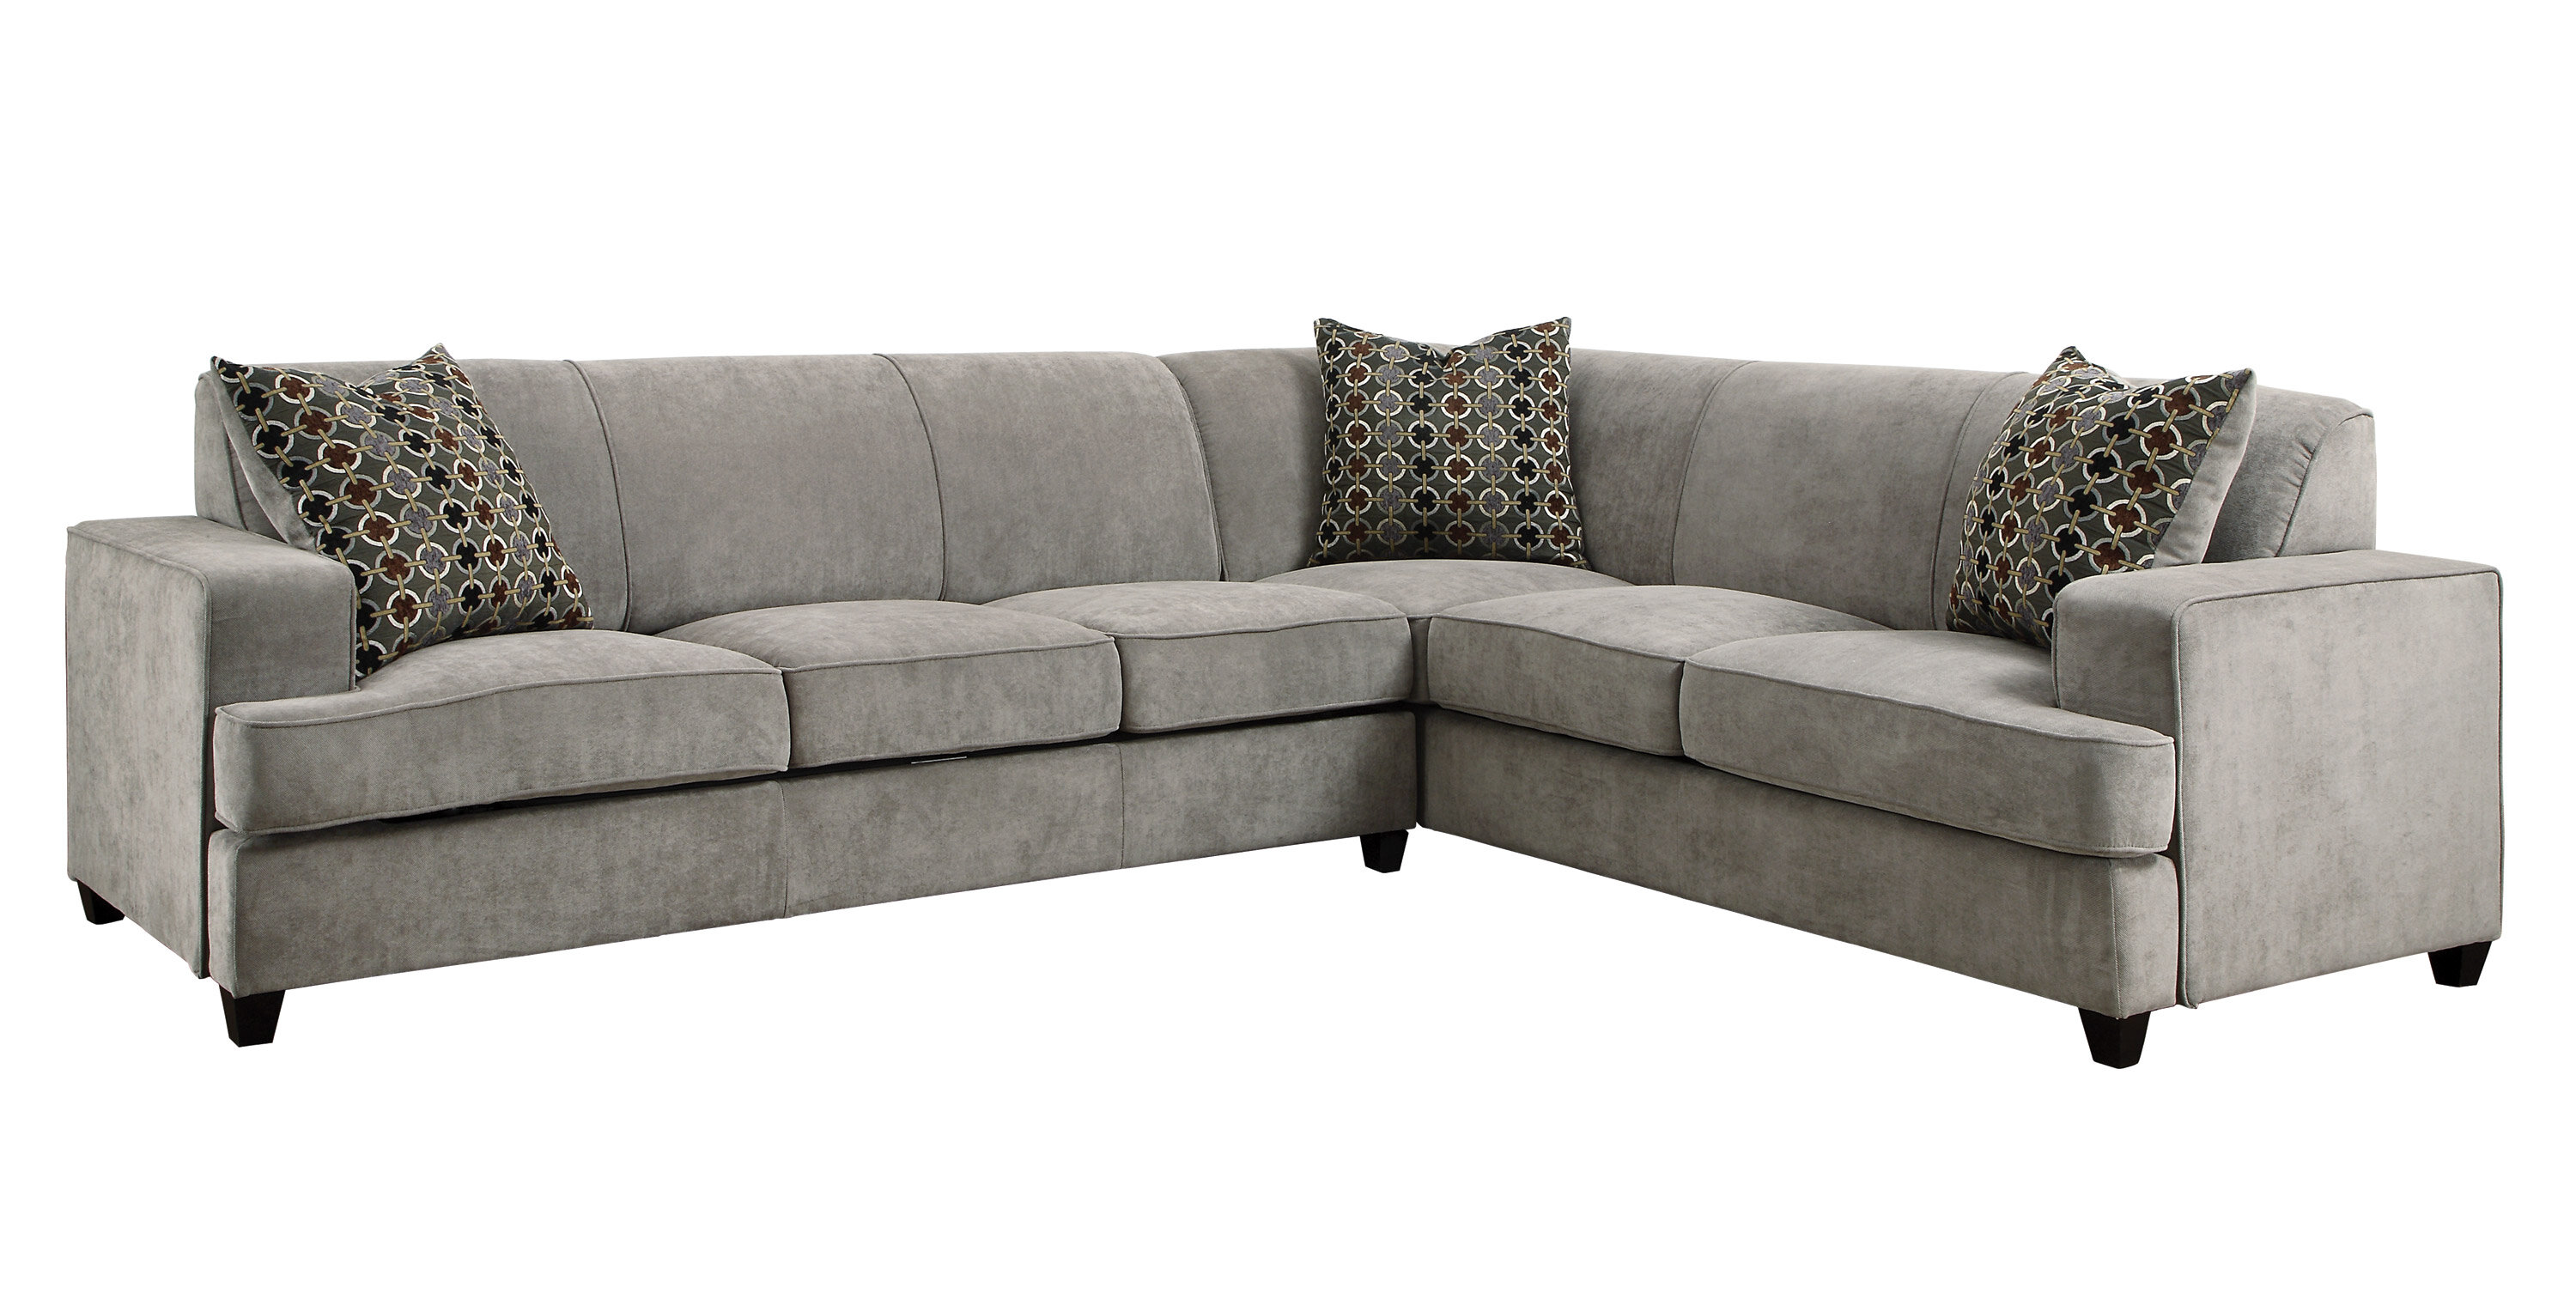 Darby Home Co Caswell Sleeper Sectional & Reviews | Wayfair